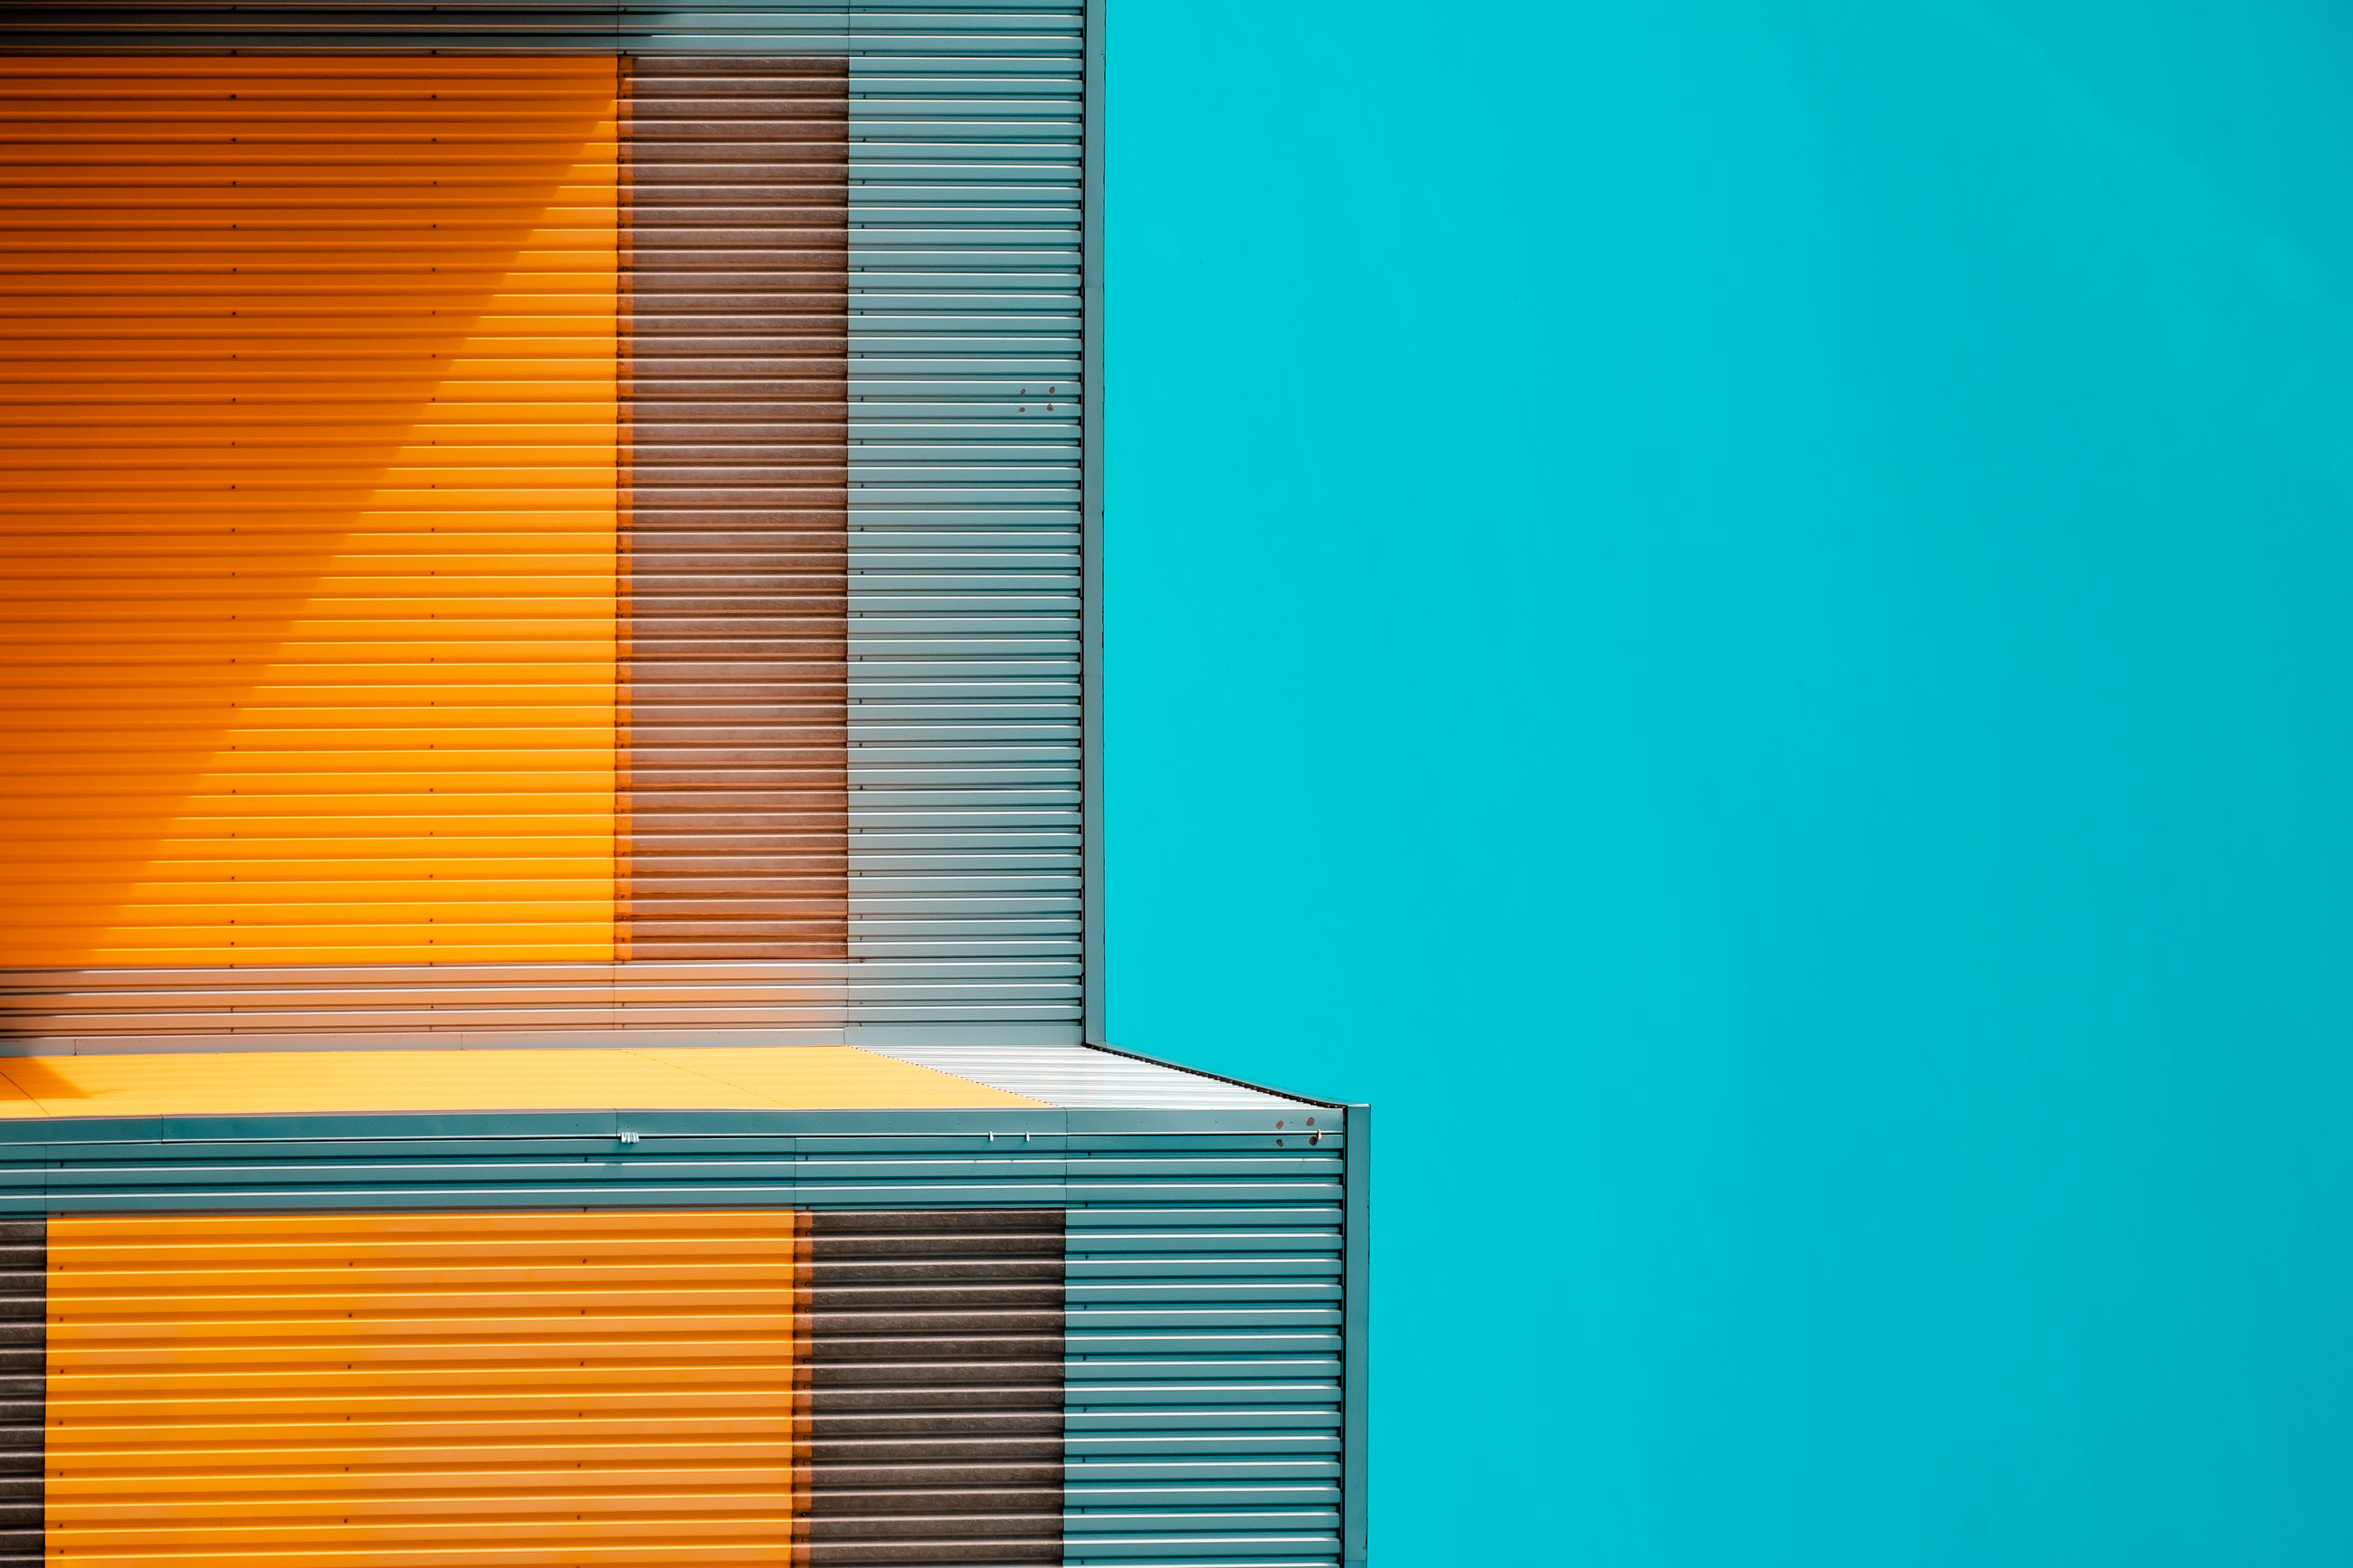 blue, window covering, no people, copy space, window blind, architecture, backgrounds, orange color, yellow, built structure, shutter, wall - building feature, blinds, pattern, building exterior, window, line, interior design, building, metal, multi colored, sunlight